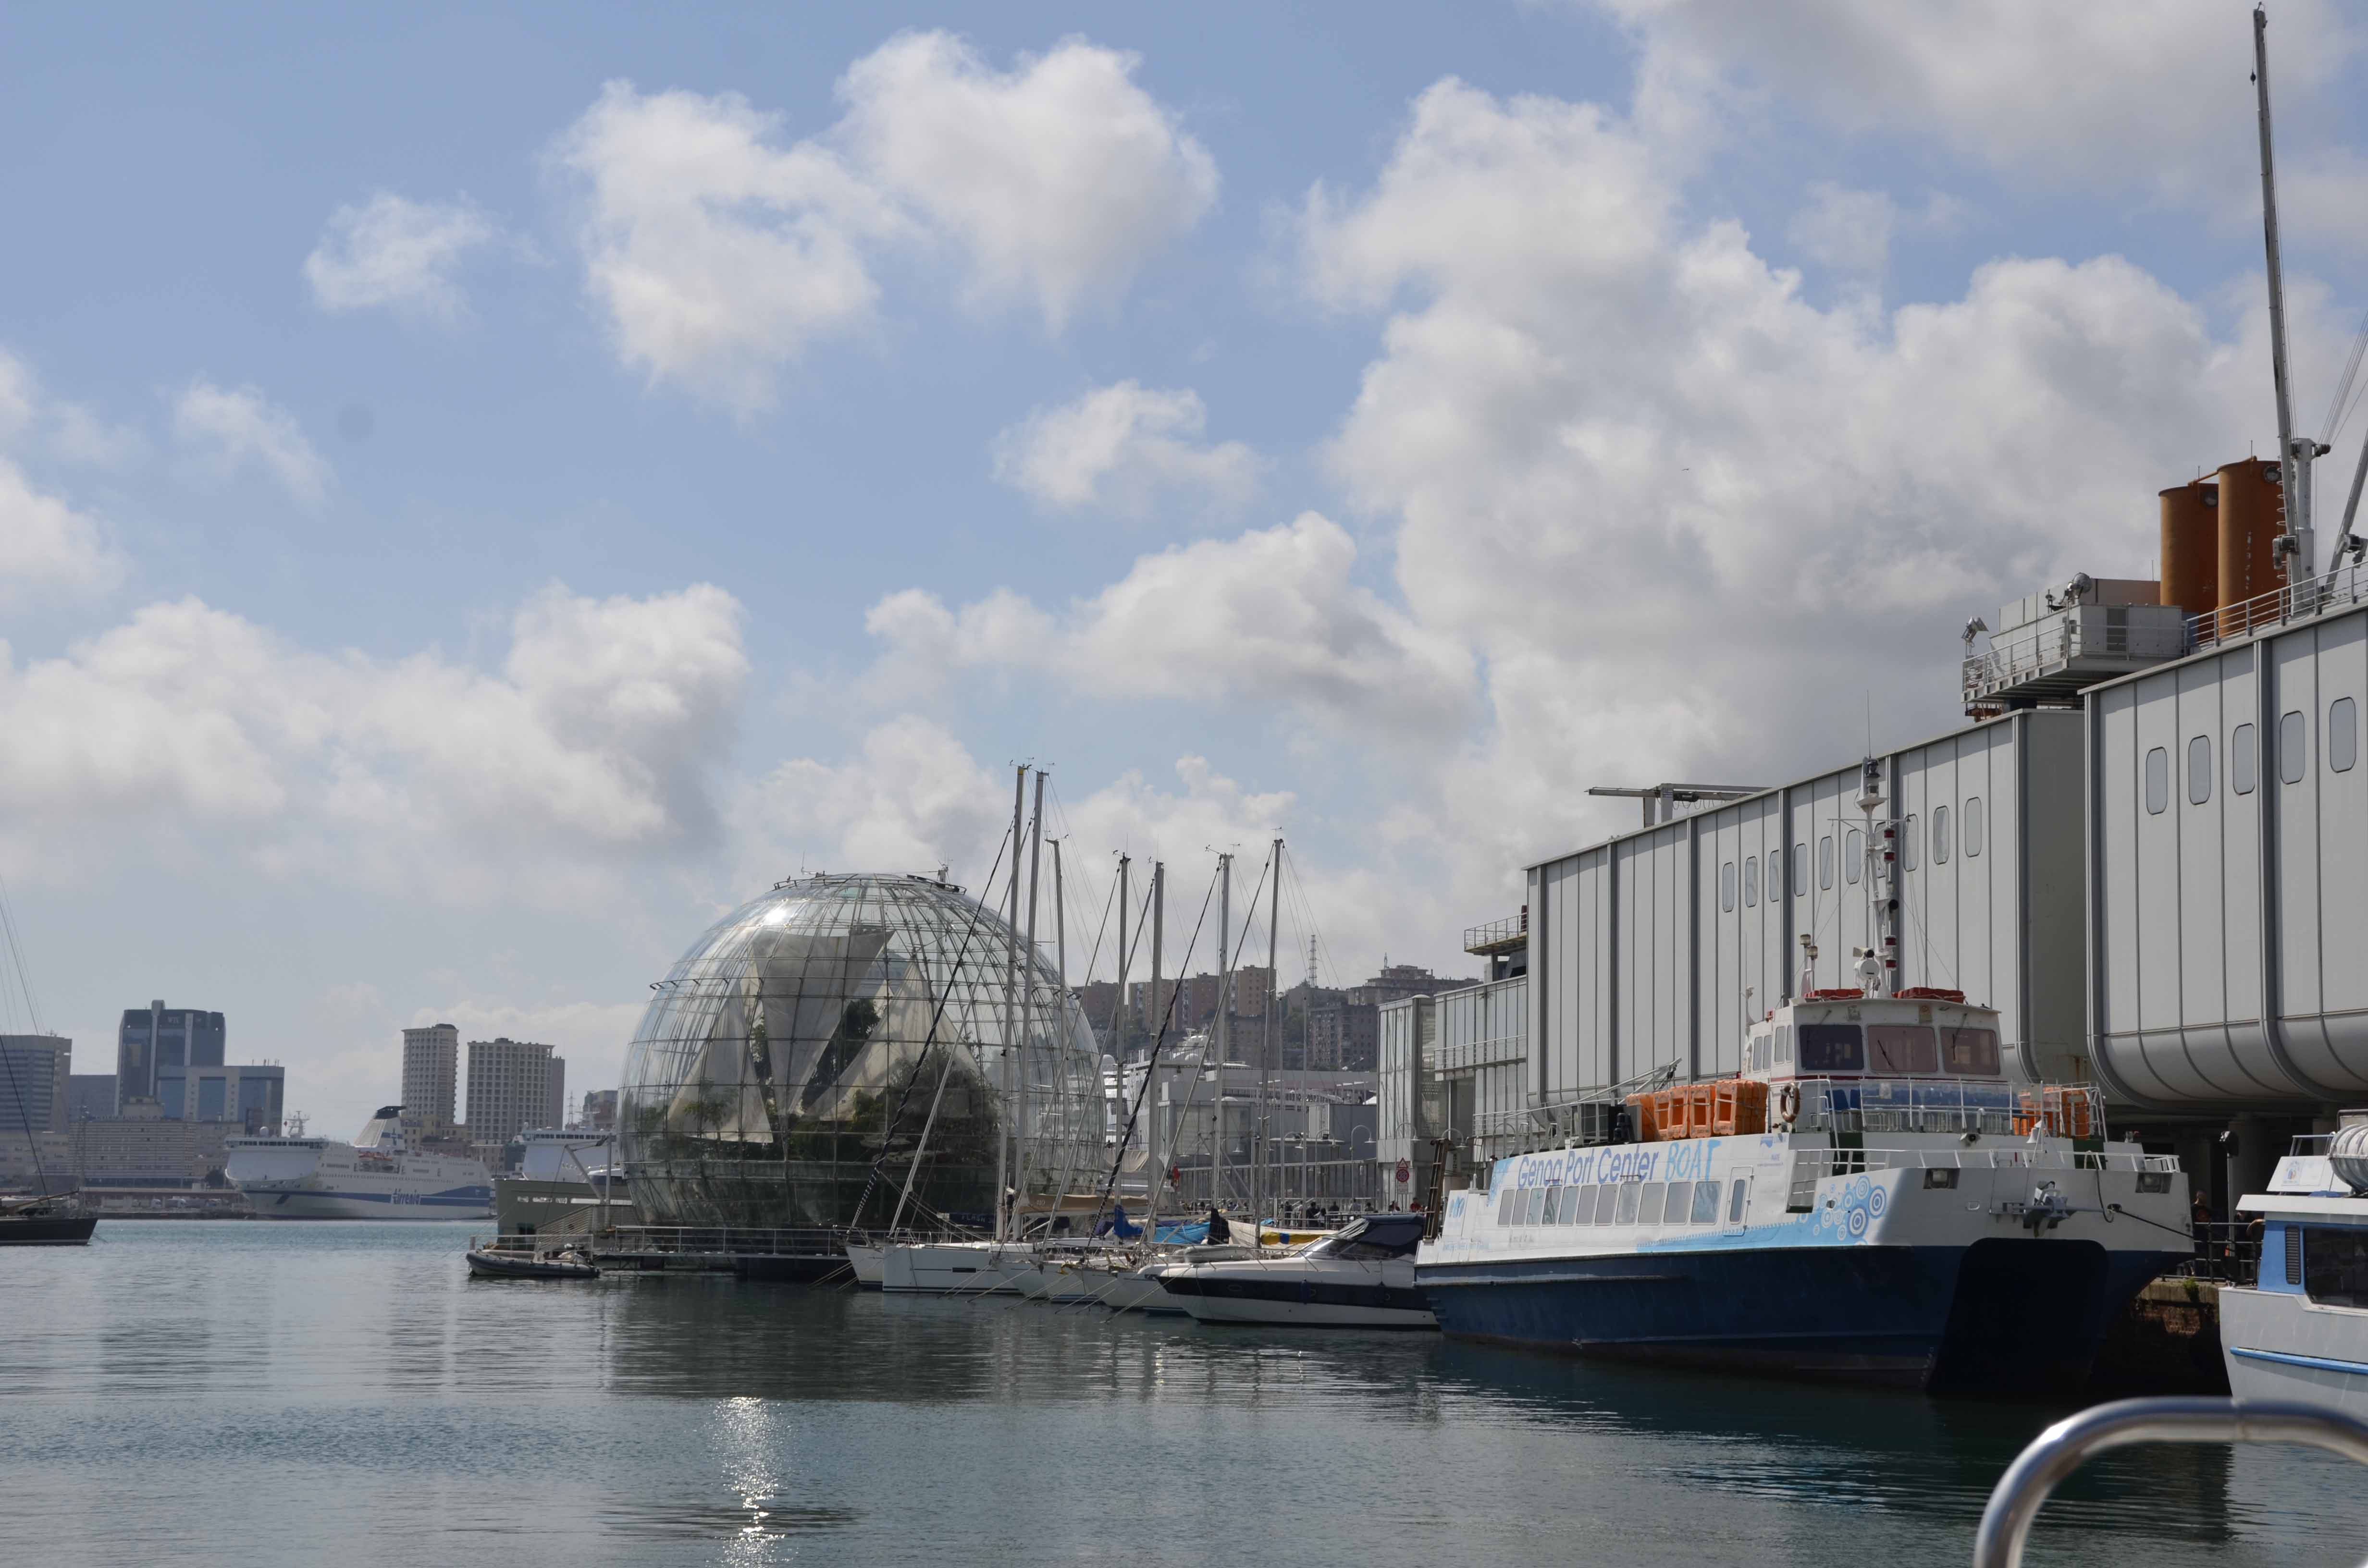 A modern first class aquarium beckons amidst the busy commercial port.